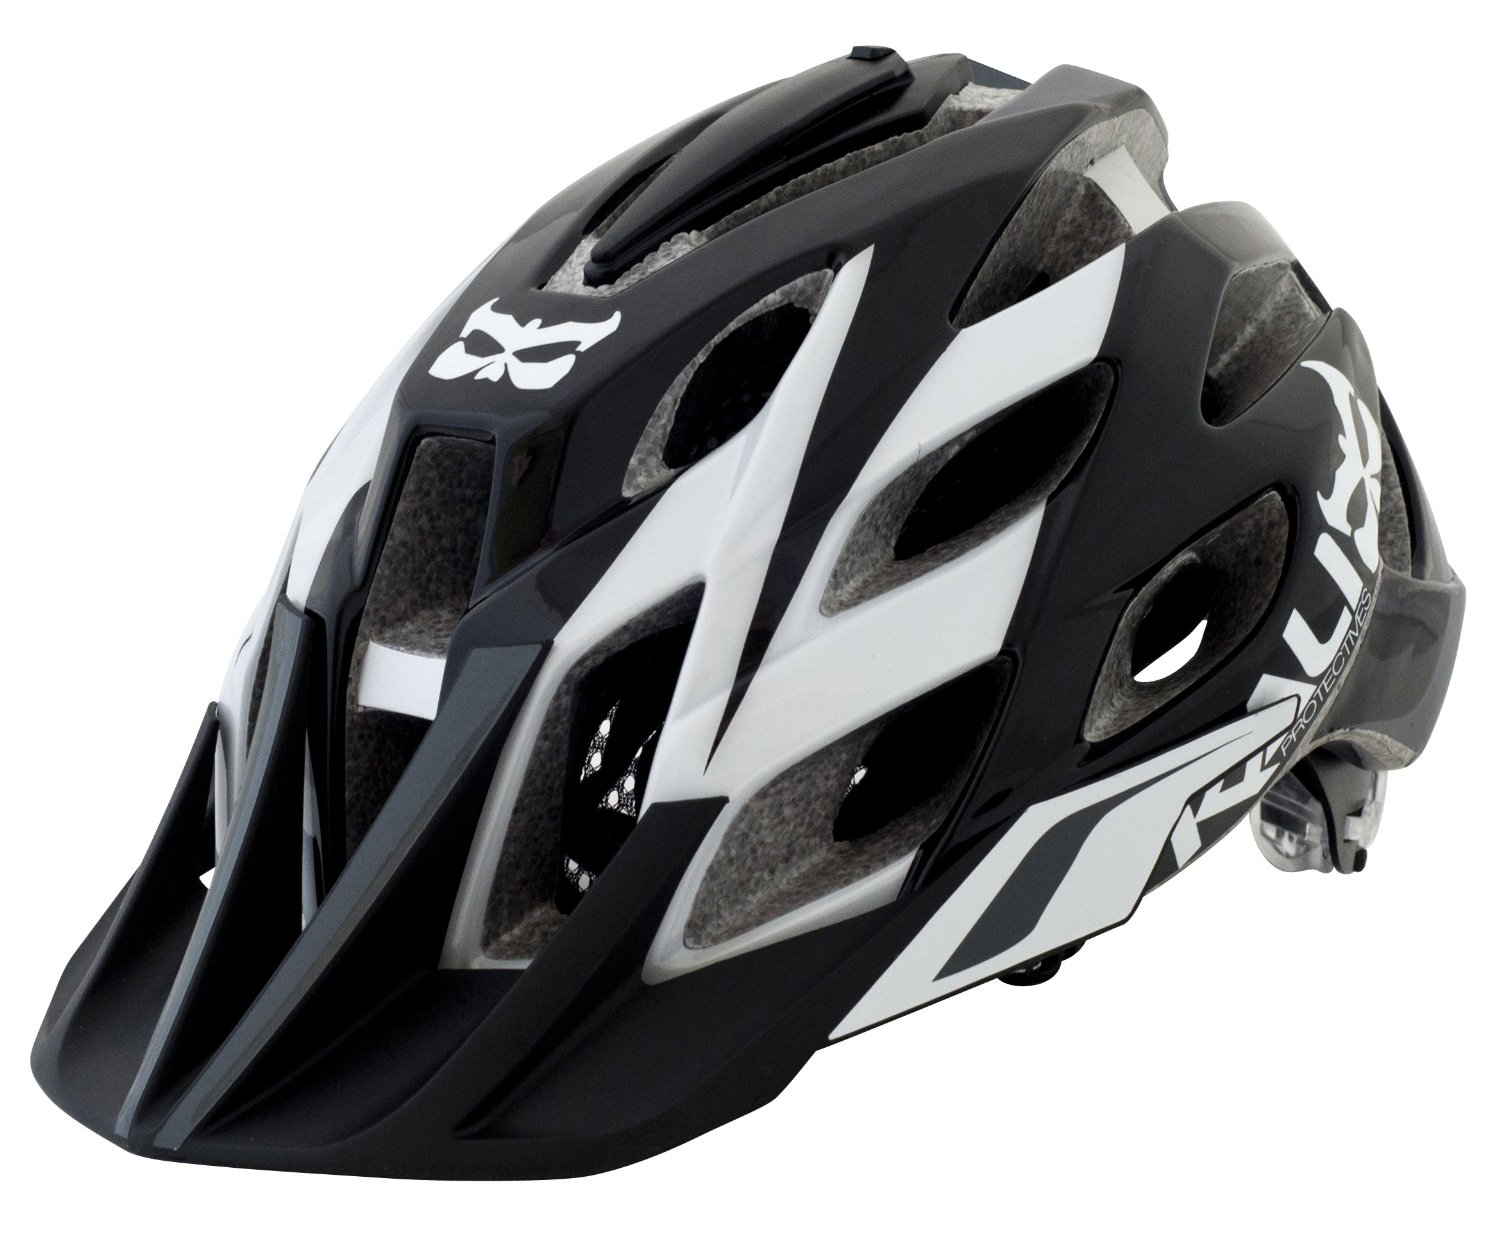 Kali Protectives Bicycle Helmets